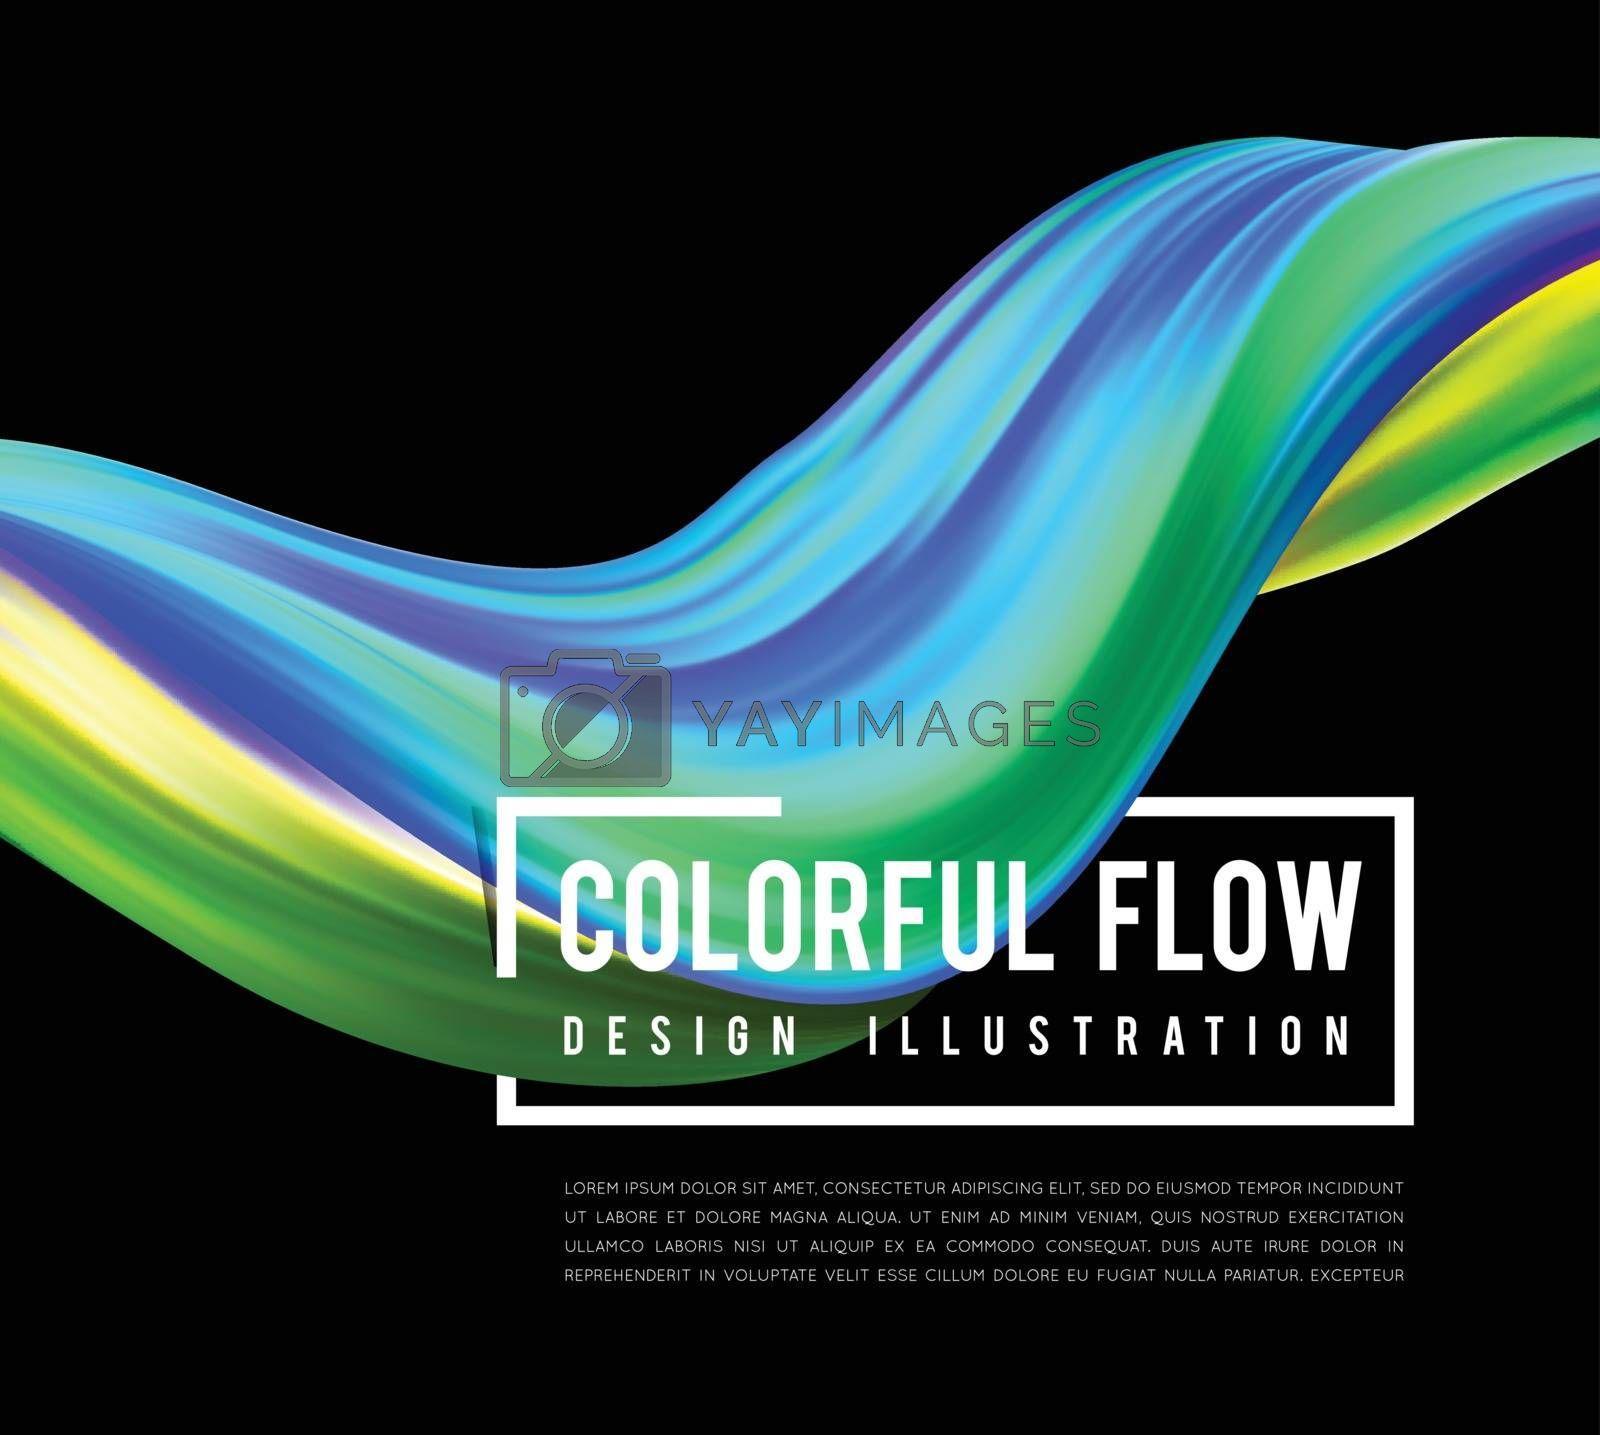 Colorful flow design. Trending wave liquid vector illustration on black background